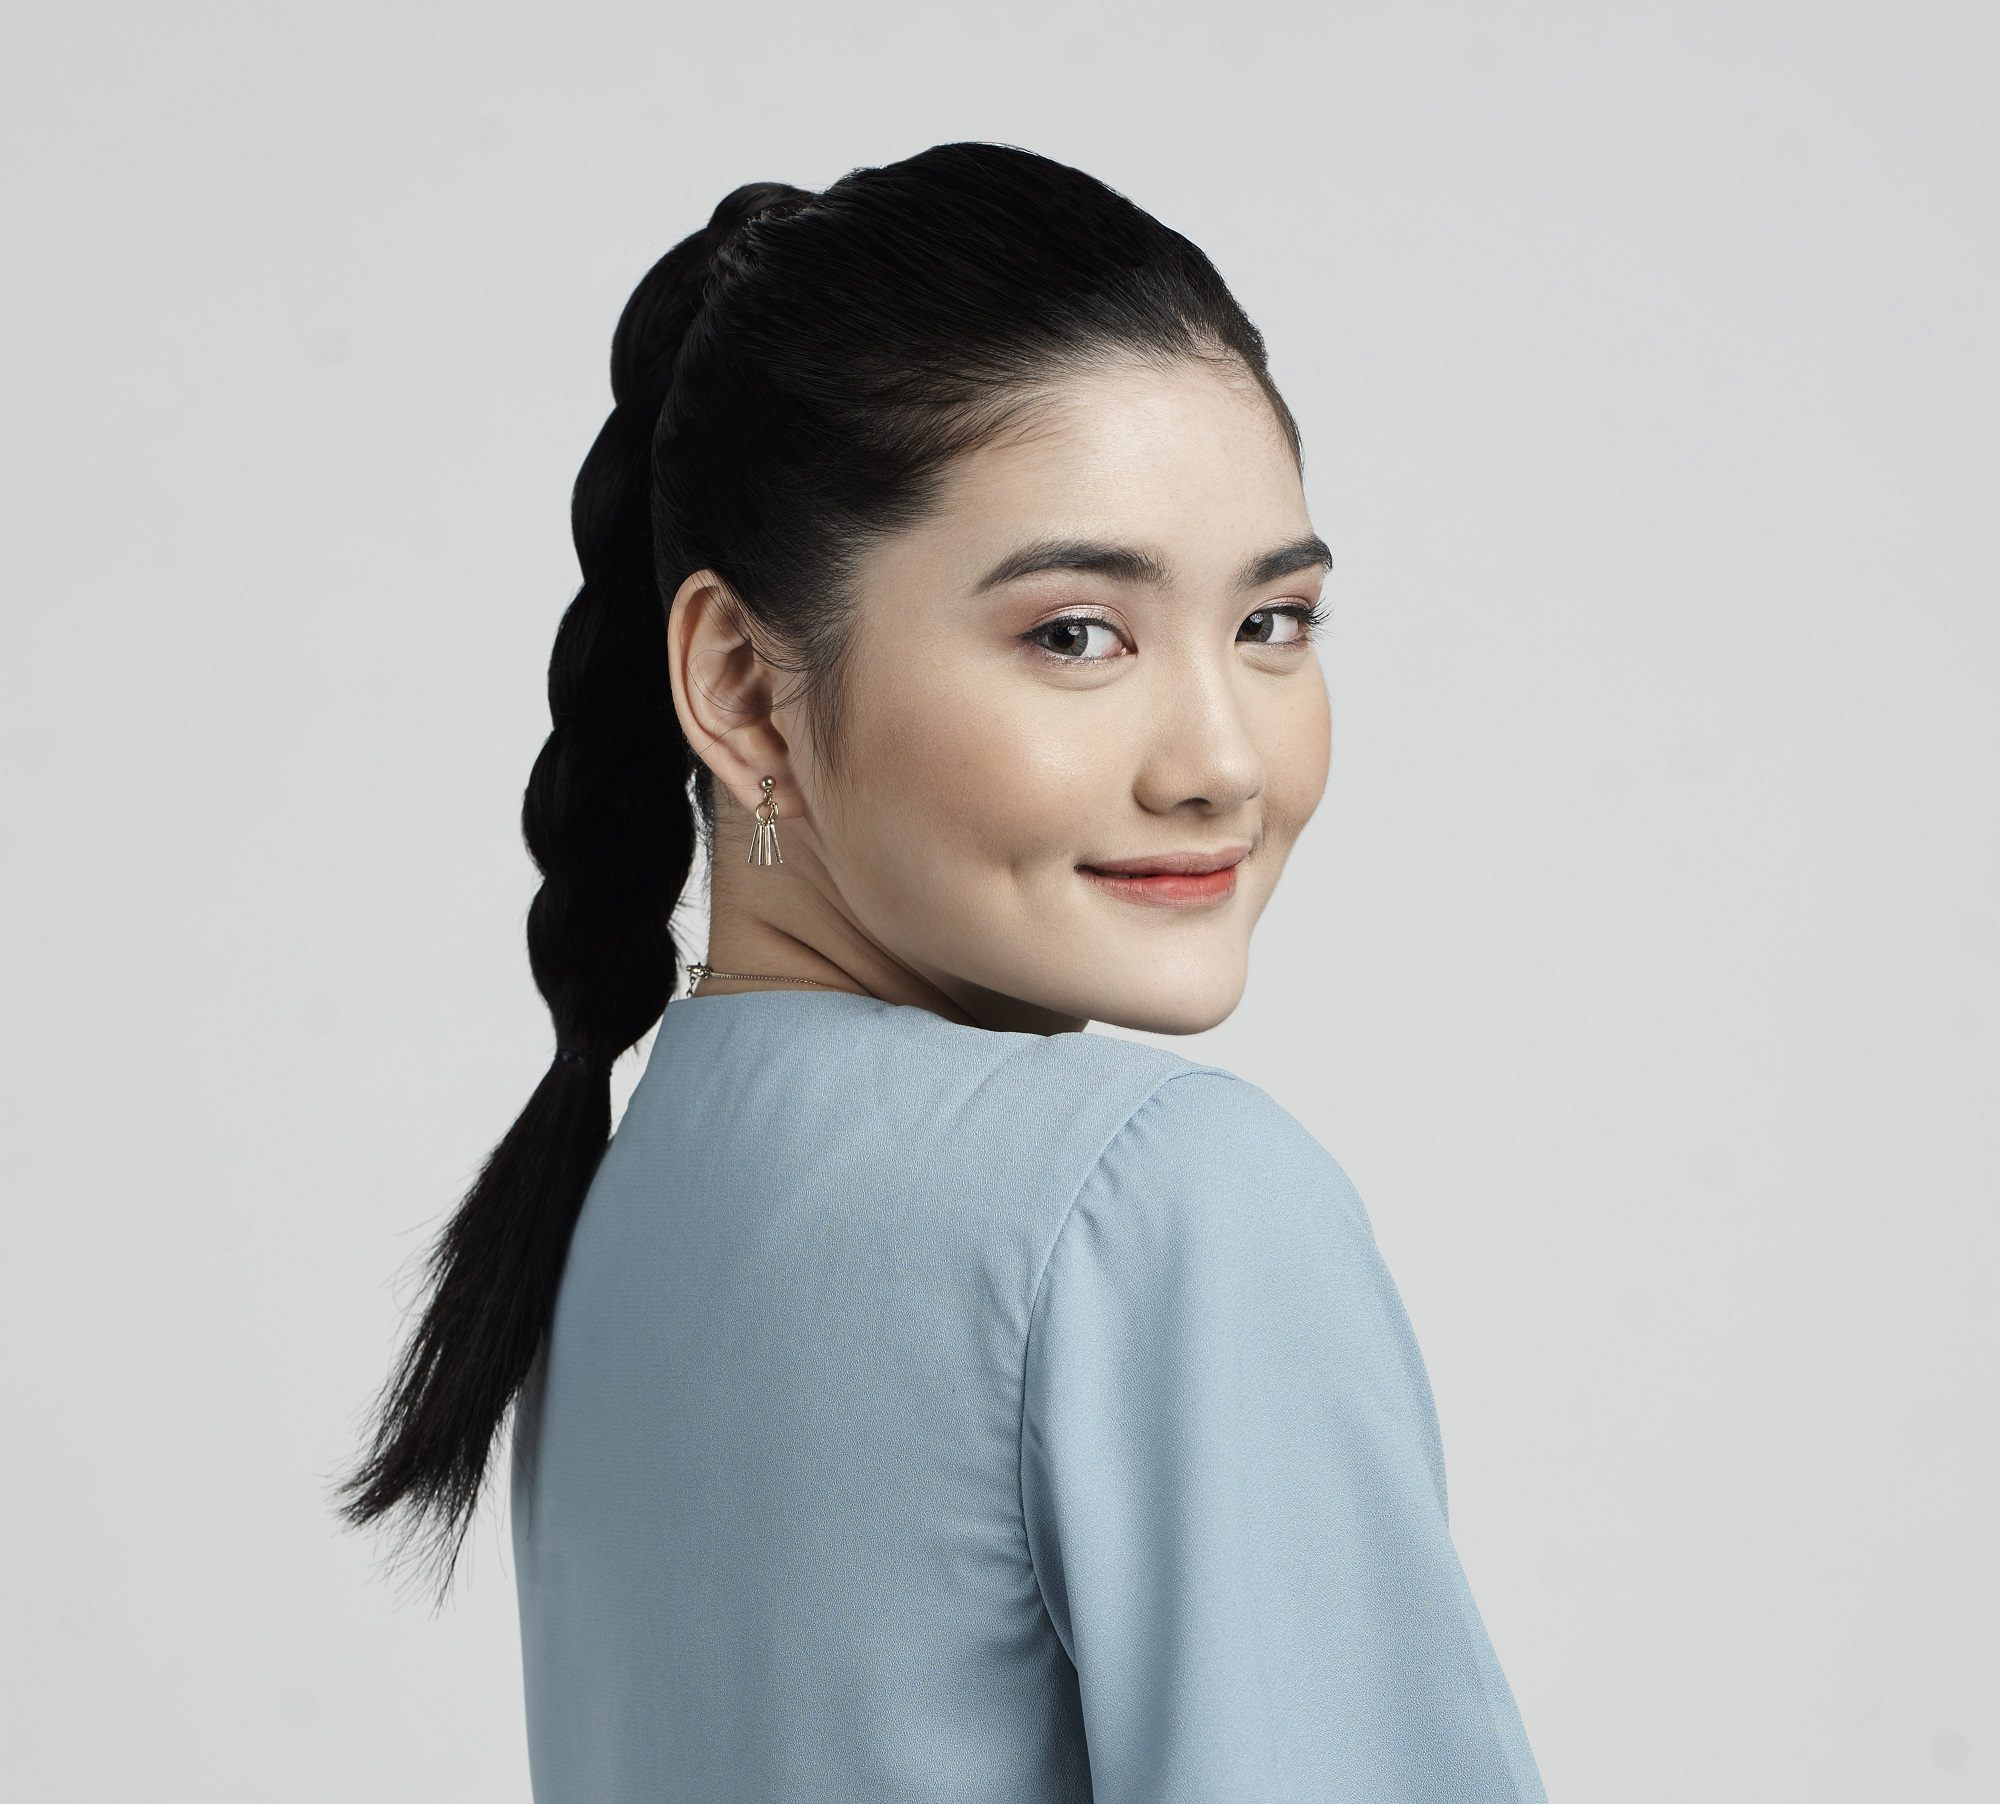 Get the look holiday gift boxes: Closeup shot of an Asian woman with long black hair in braid ponytail wearing a blue dress against a light gray background